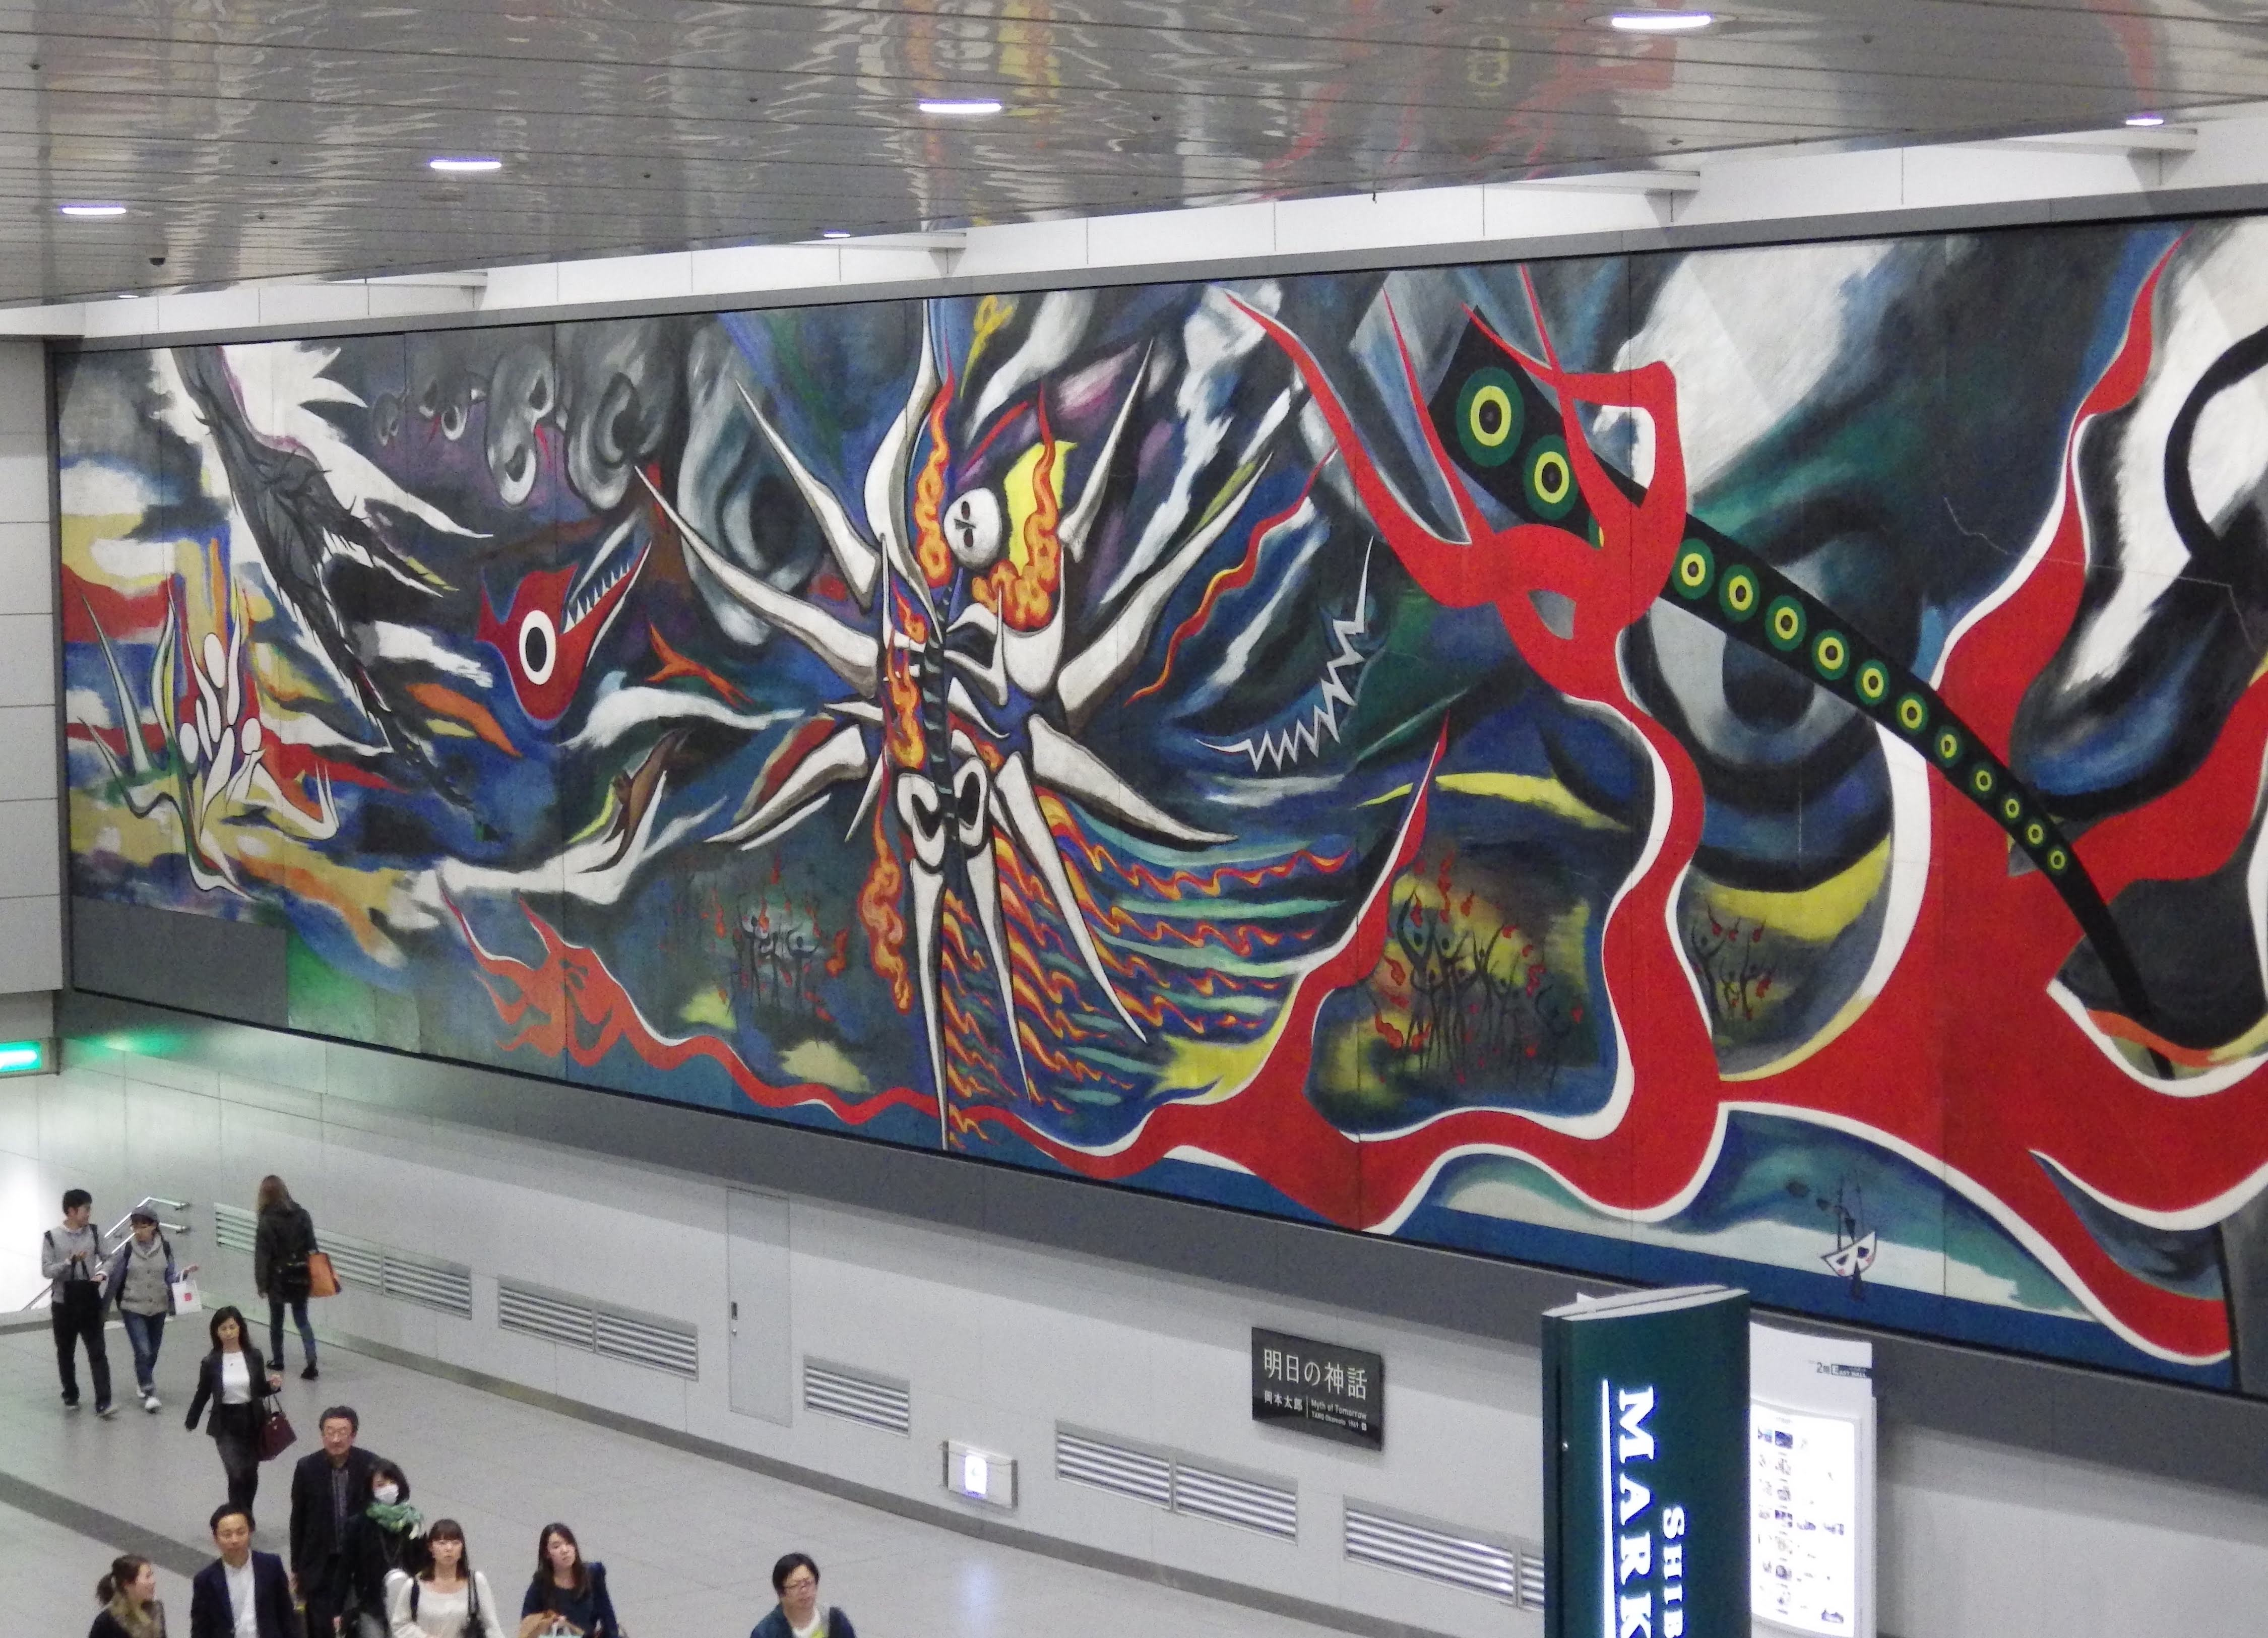 Taro Okamoto's mural 'The Myth of Tomorrow' in Shibuya station.